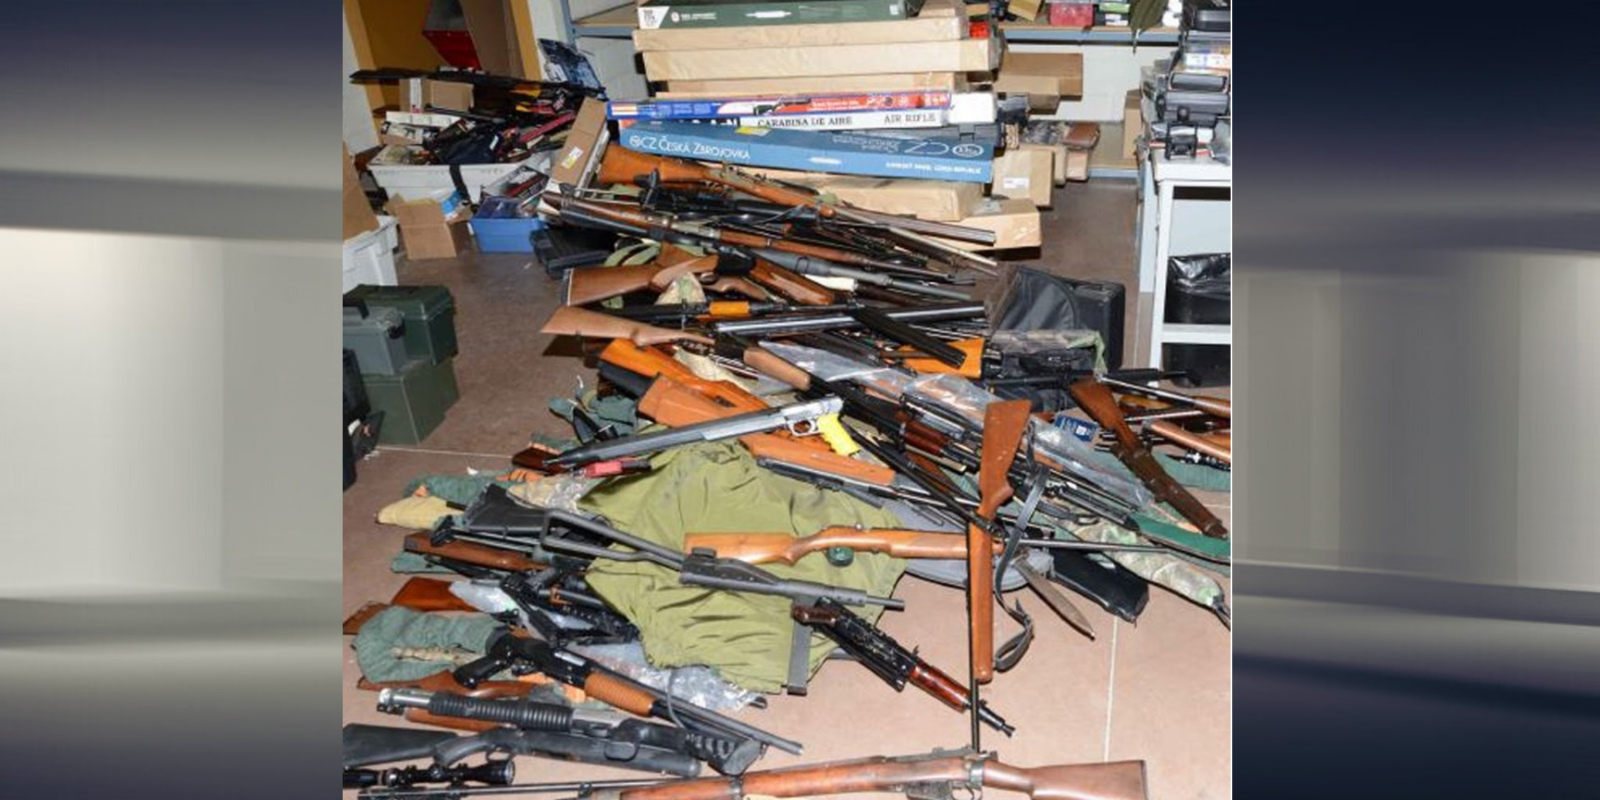 Over 850 guns found in Ottawa home after neighbour tattles to police